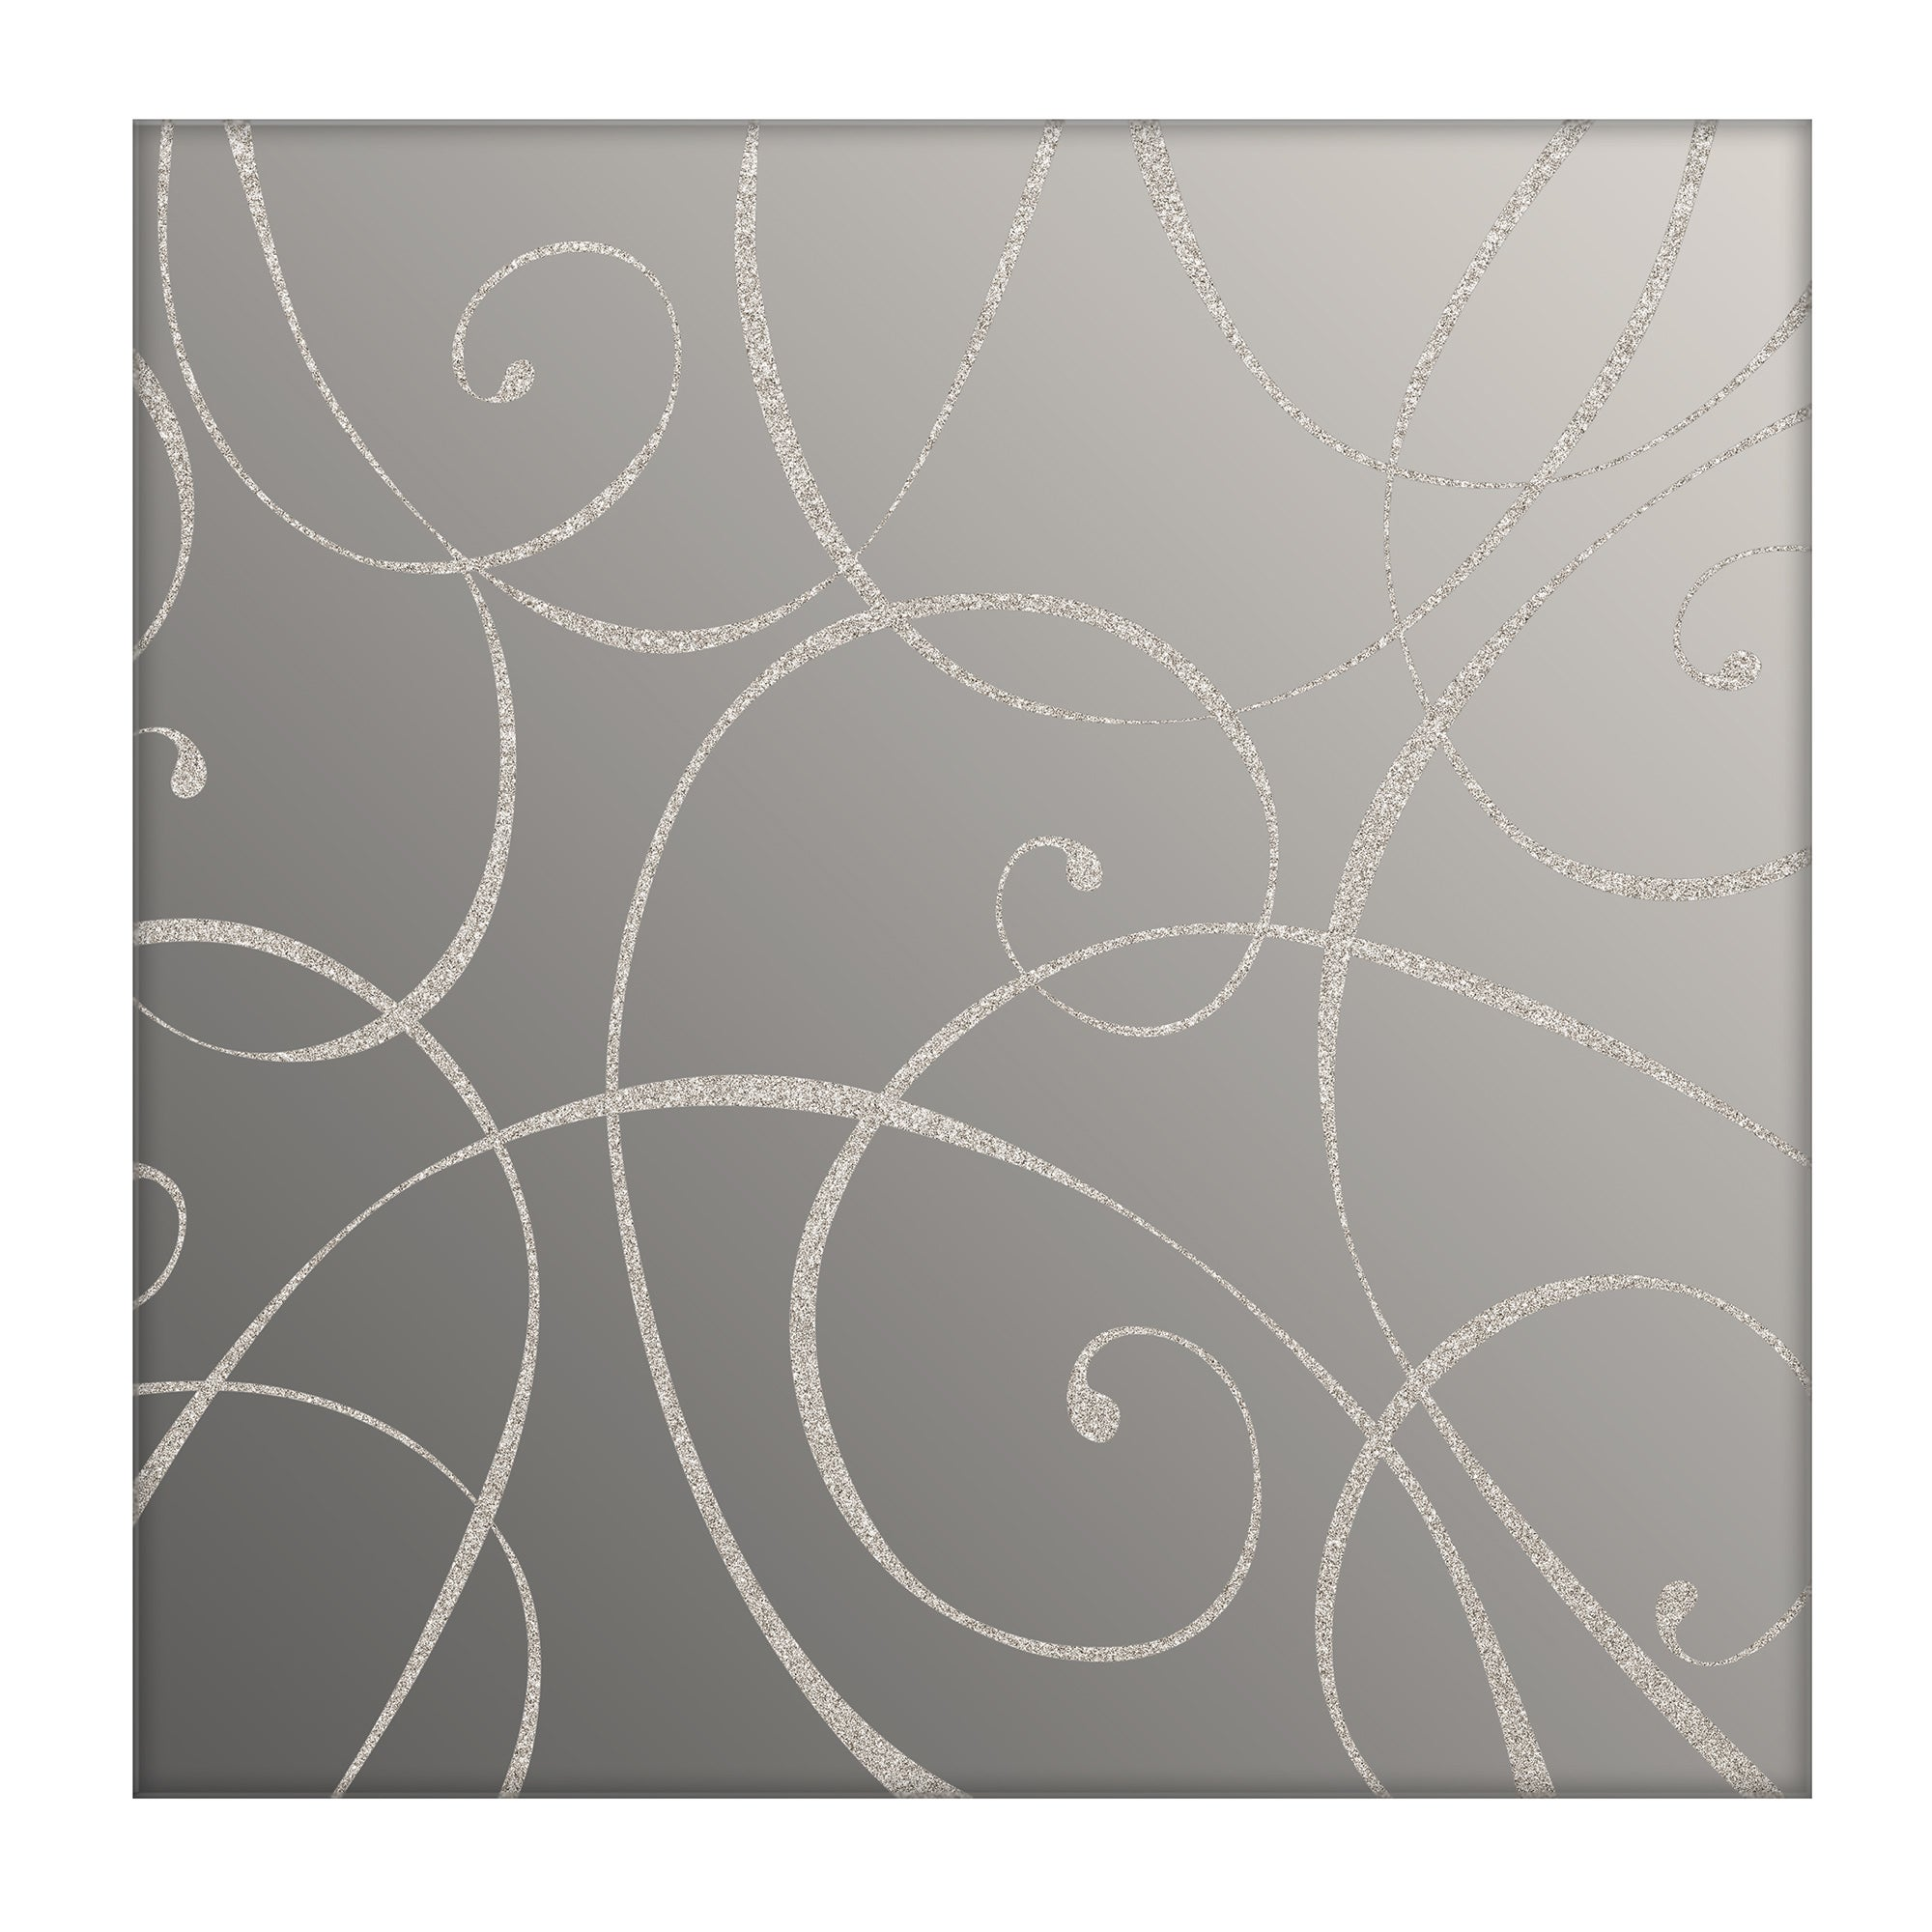 Image of 2 Elegant Script Mirrored Placemats Silver